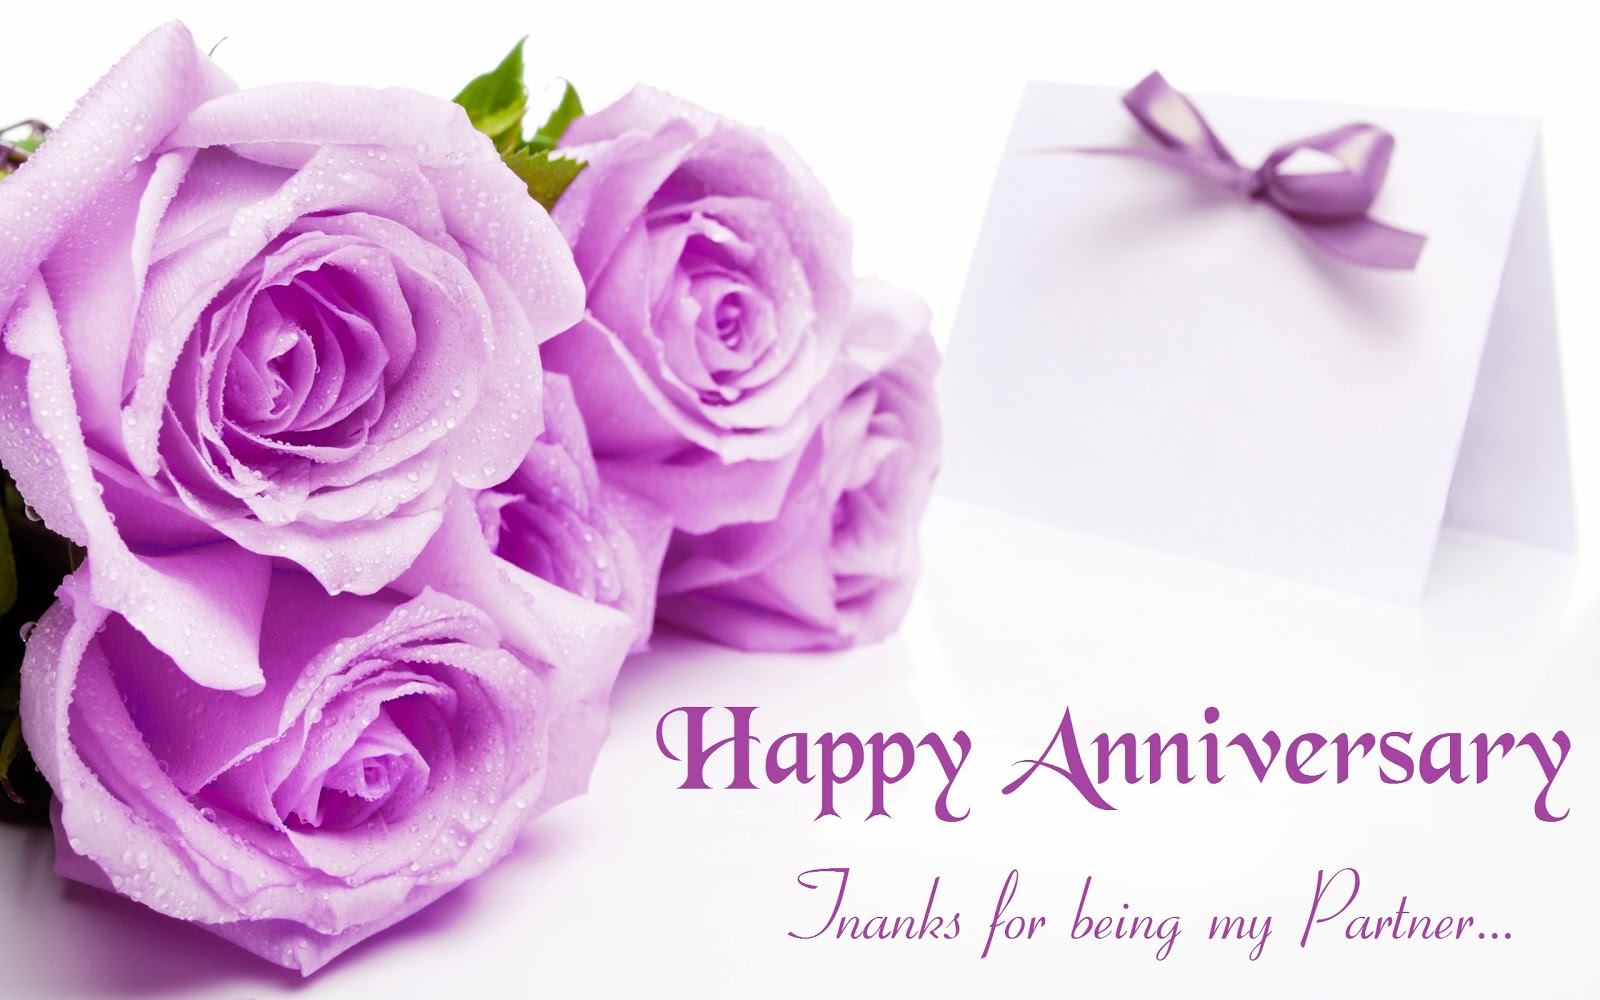 Happy Anniversary Fb Profile Posts, Photos And Pictures   Daily Roabox